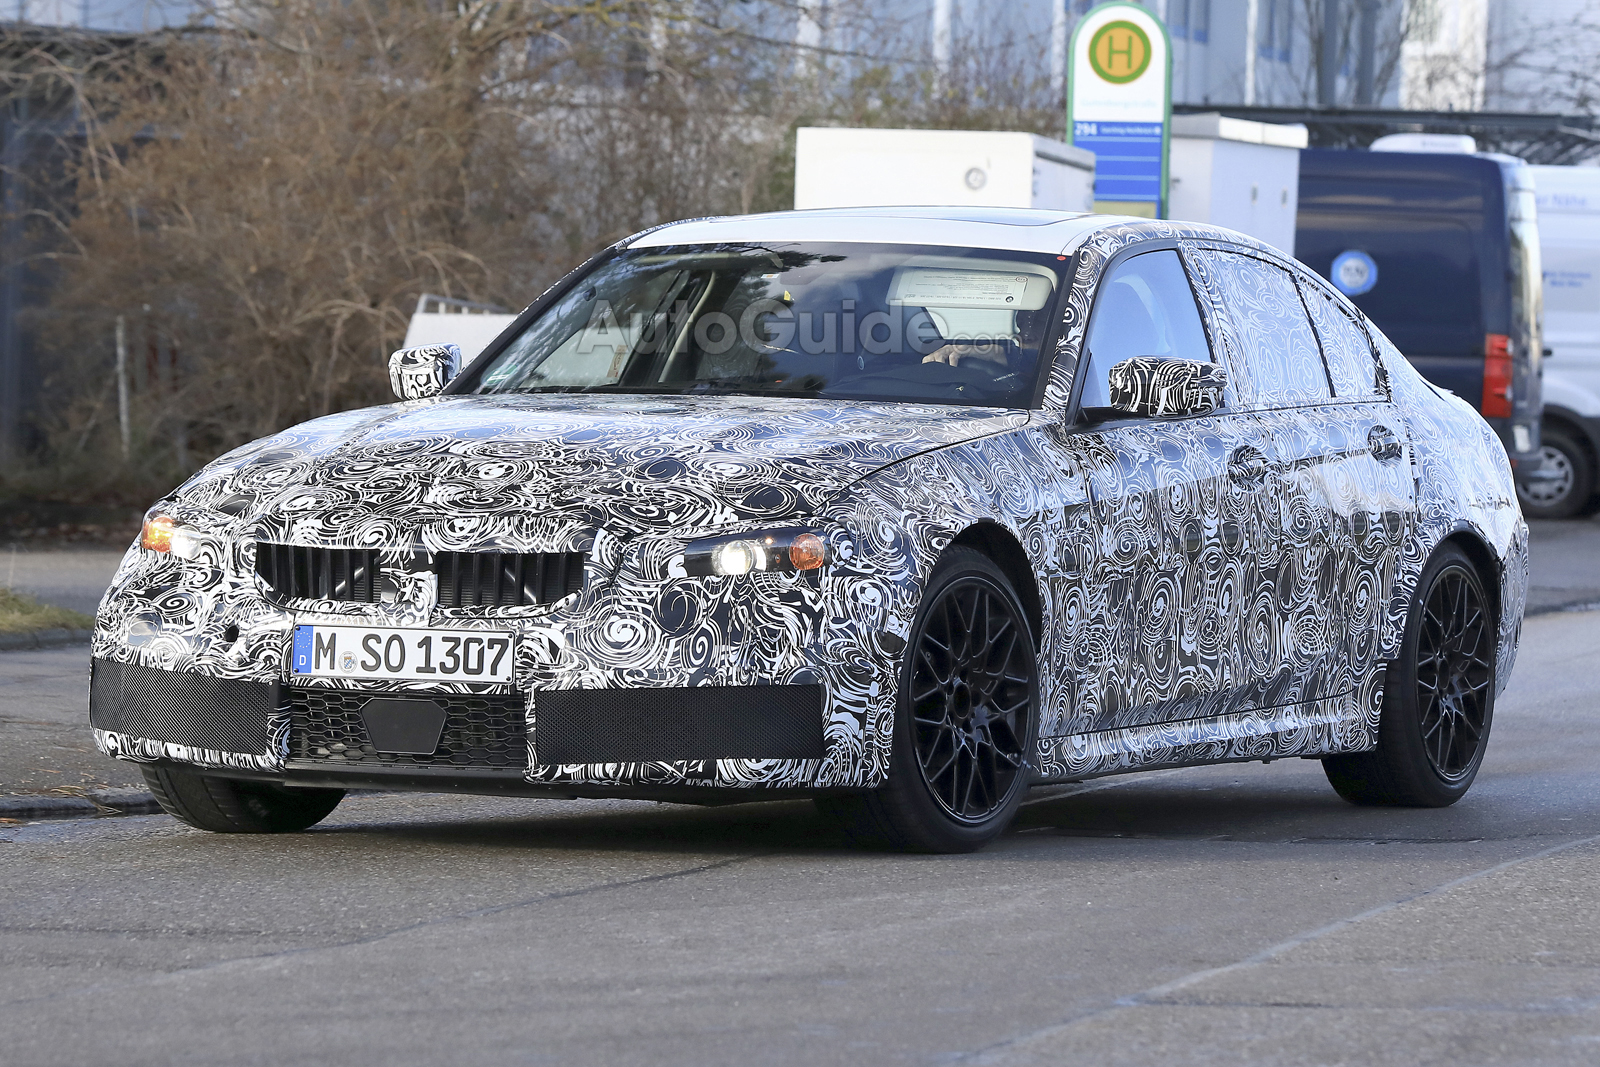 Next Gen Bmw M3 Smiles For The Camera Ahead Of 2019 Debut